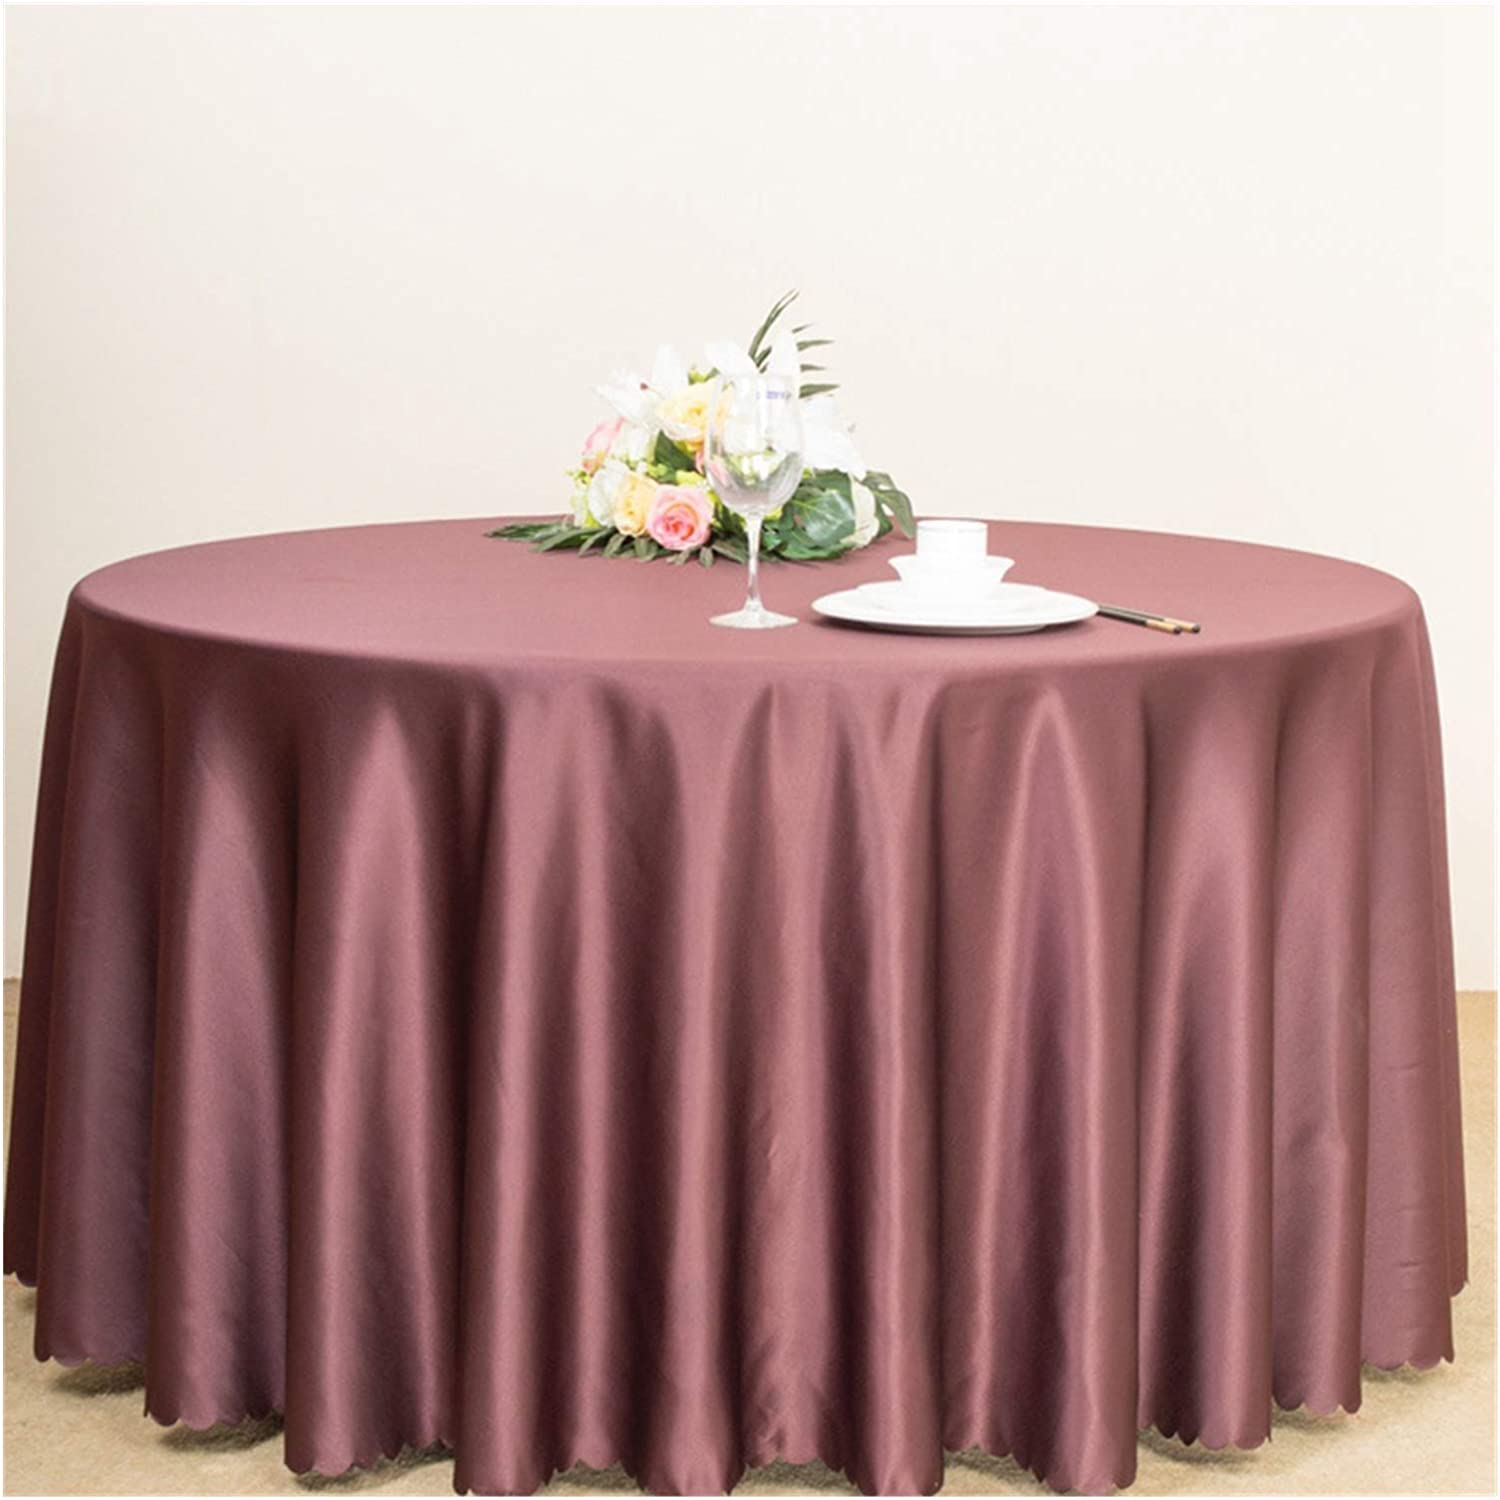 Tablecloth Round Tablecloth,Solid Color Cheap Special price for a limited time Hot Coffee Cloth Table